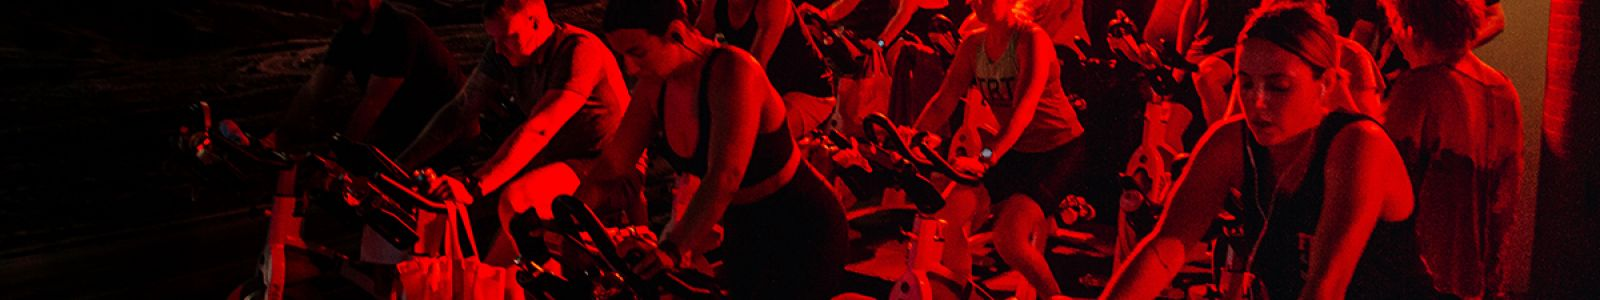 24 Hour Spinathon